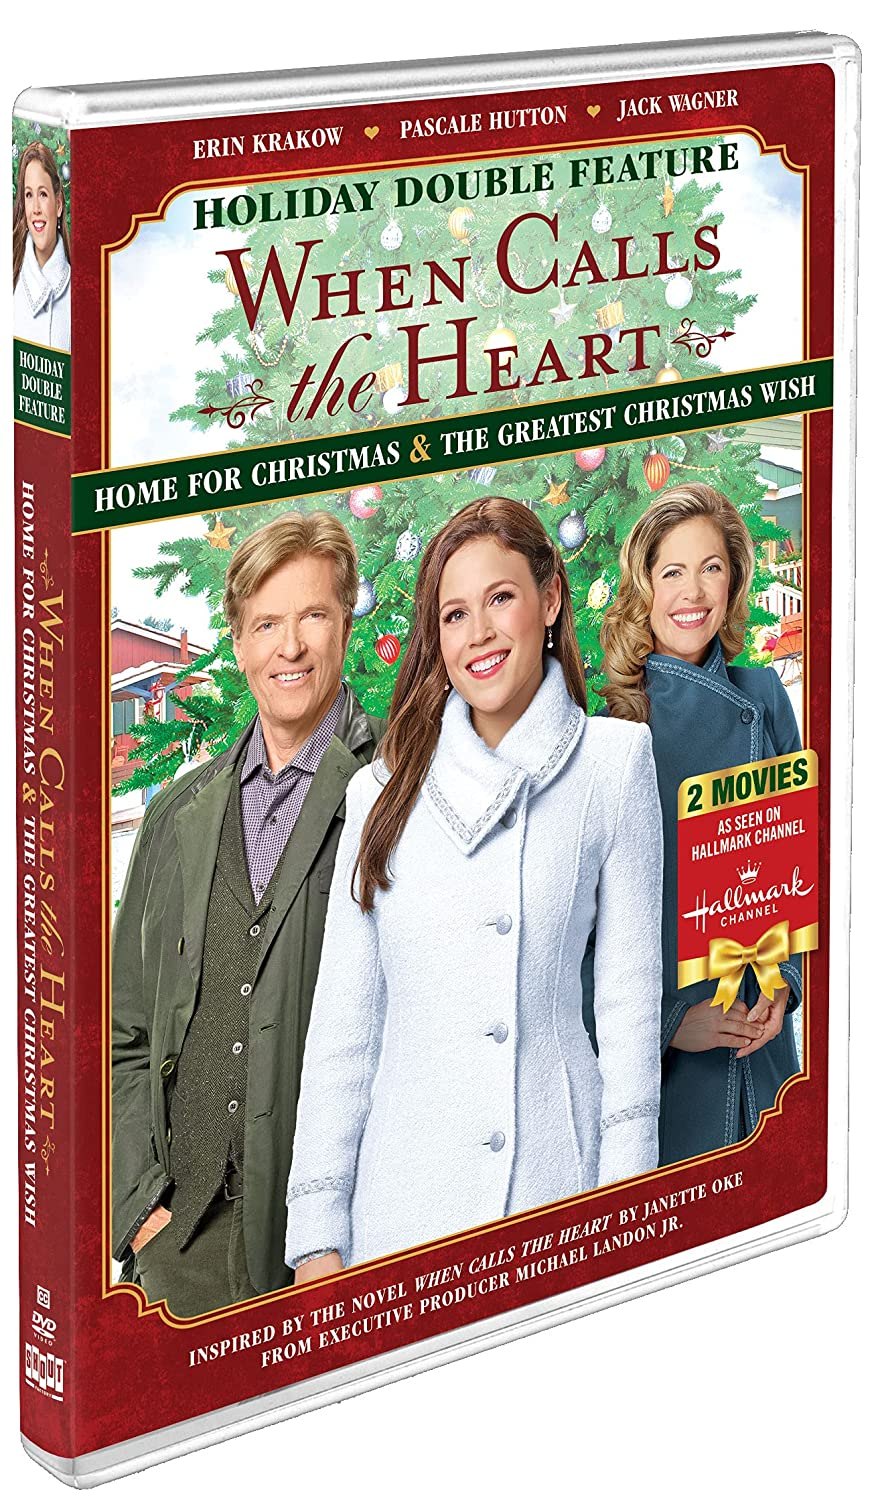 When Calls the Heart Holiday Double Feature: Home for Christmas & The Greatest Christmas Wish [DVD]